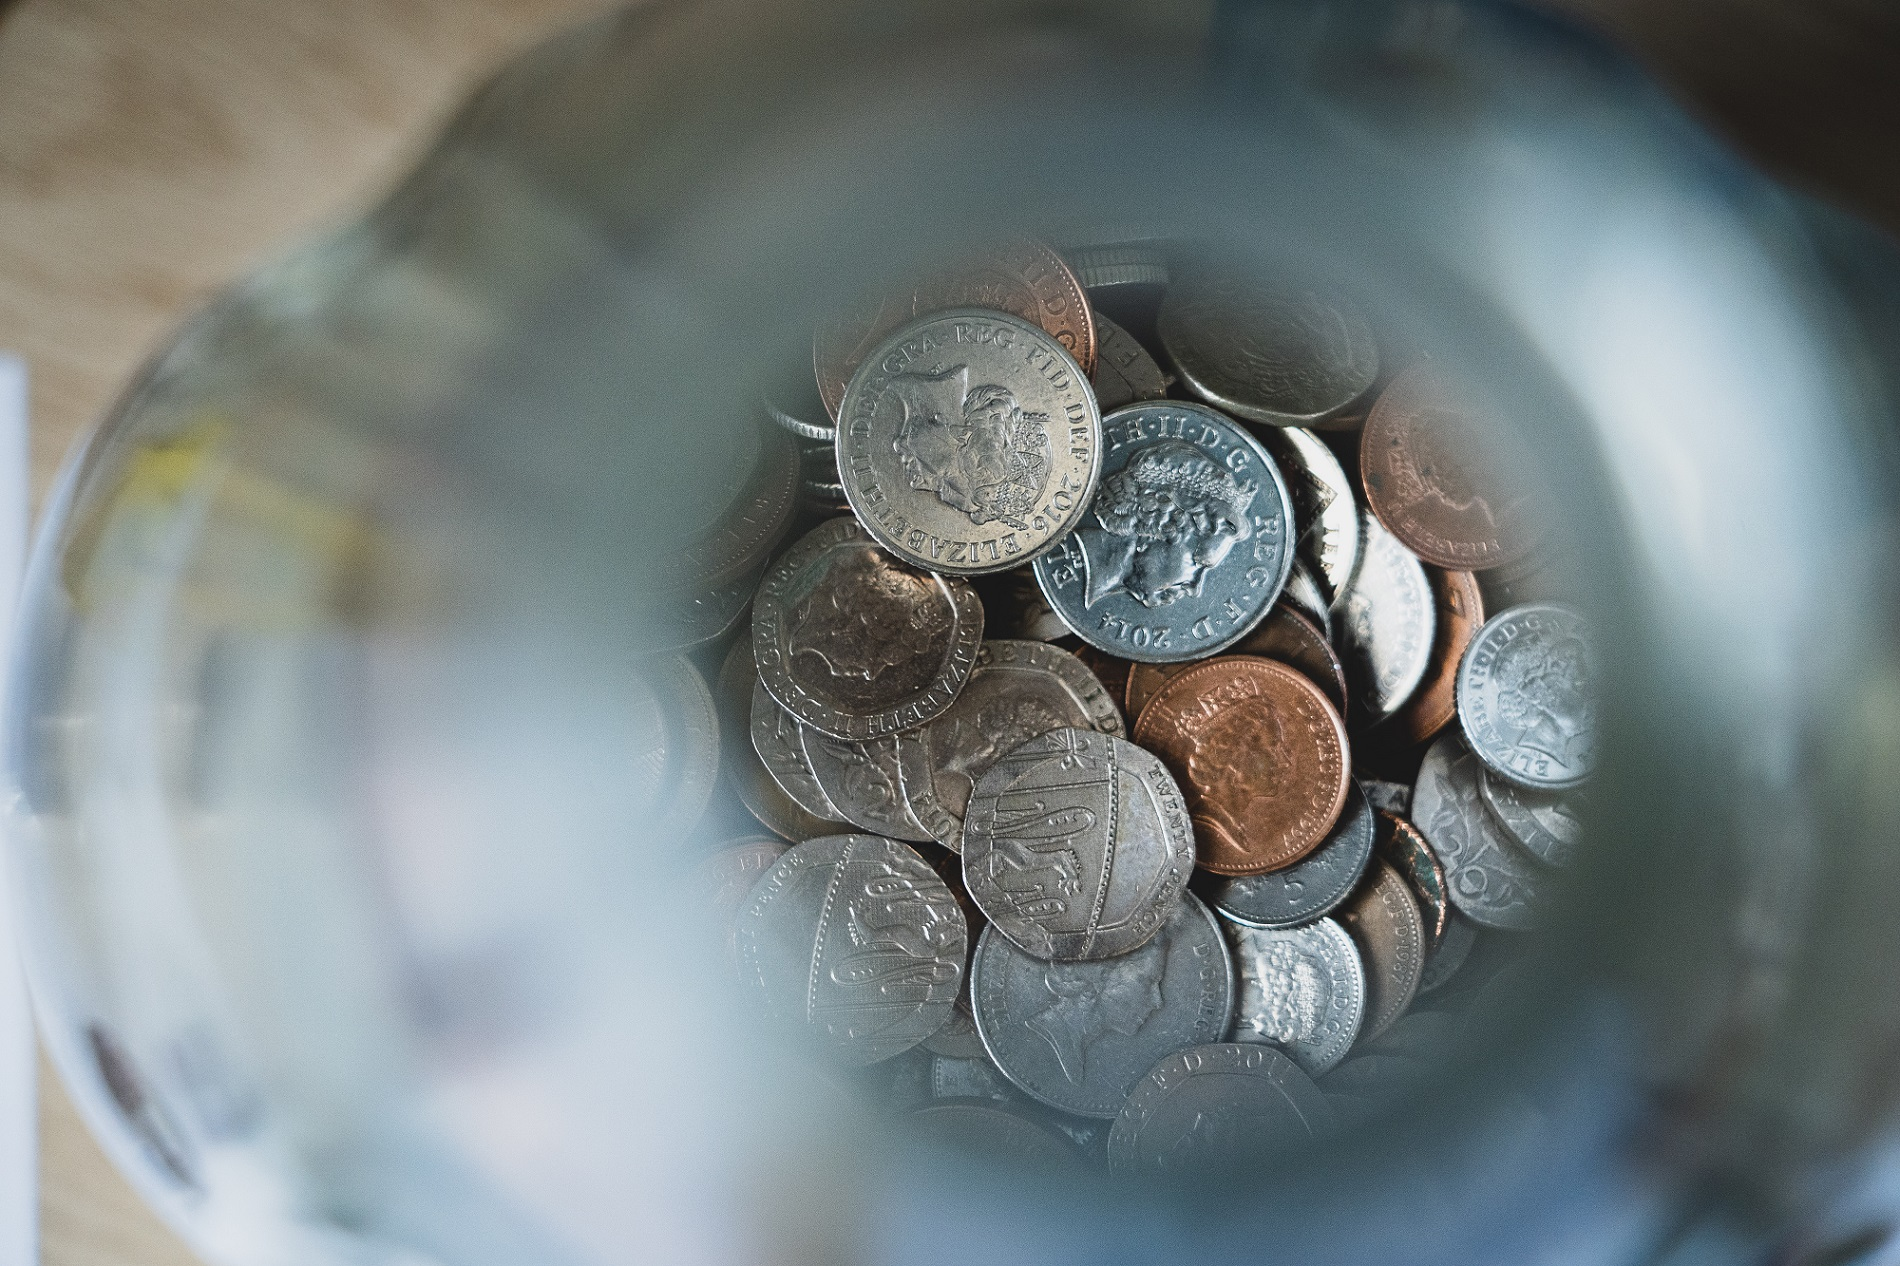 coins in a jar, money